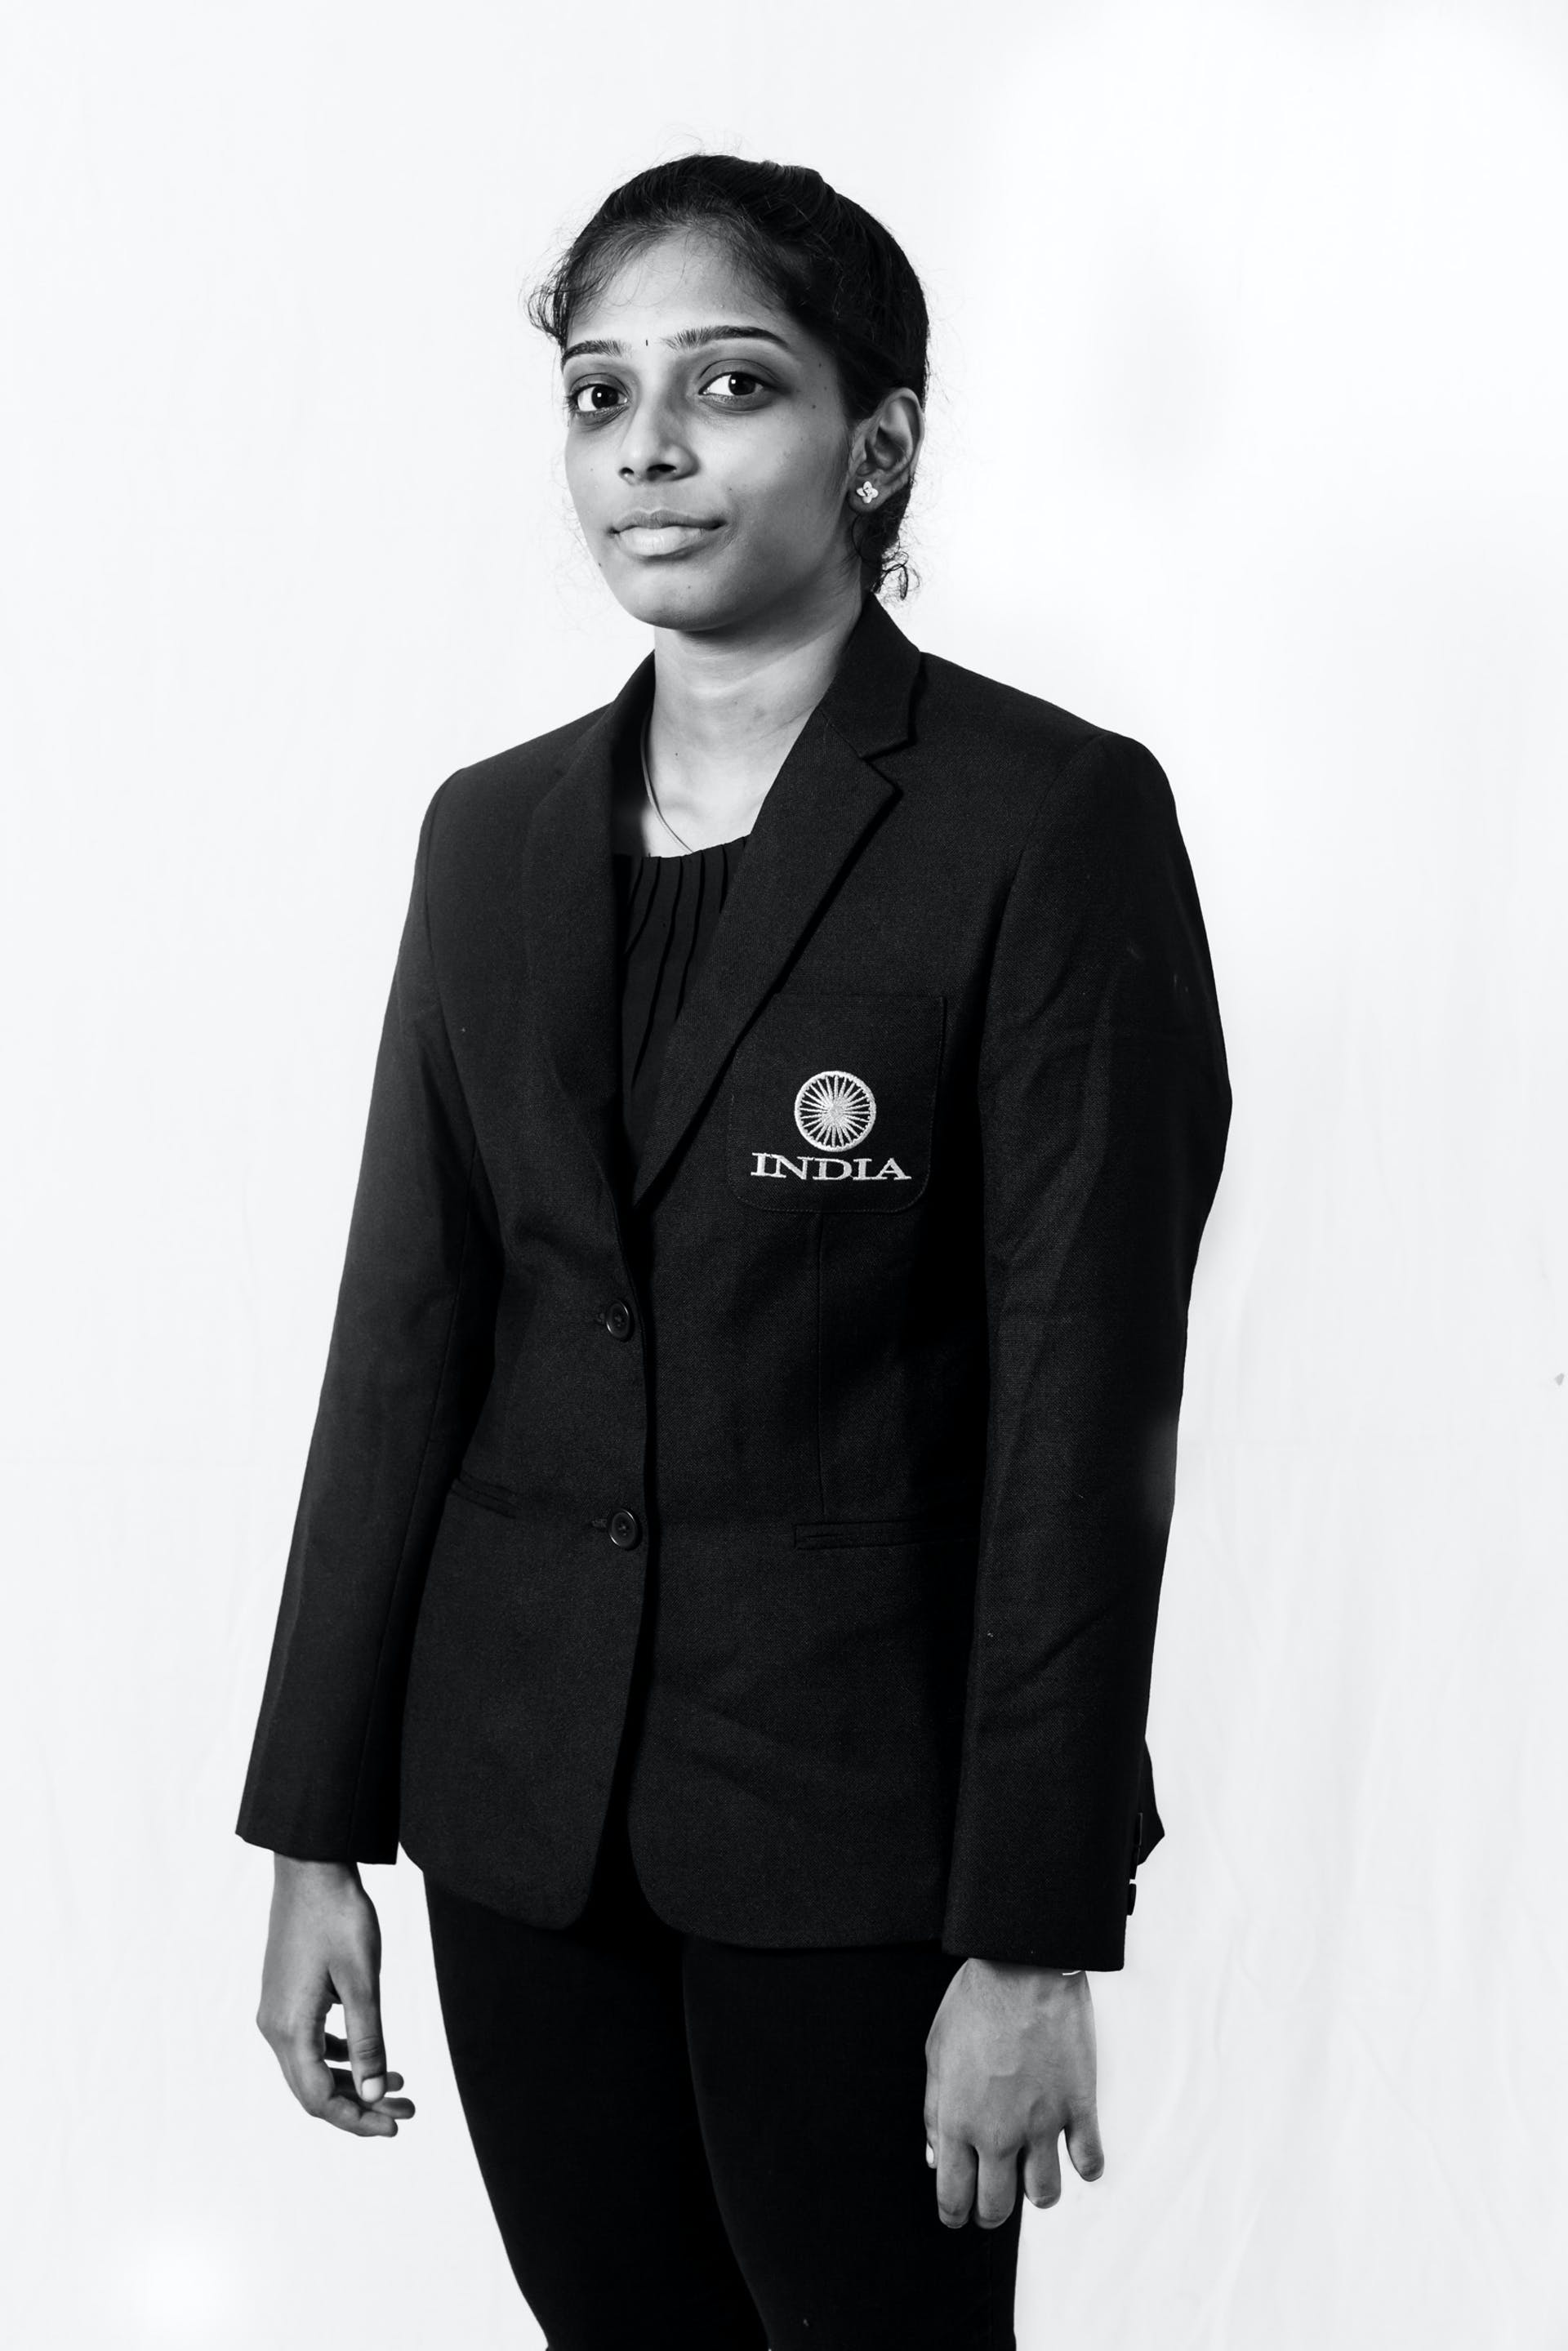 19-year-old Vaishali, Praggnanandhaa's sibling, achieved the third and final Woman Grandmaster norm at a tournament in Latvia in August 2018. Picture Credit: Harsha Vadlamani